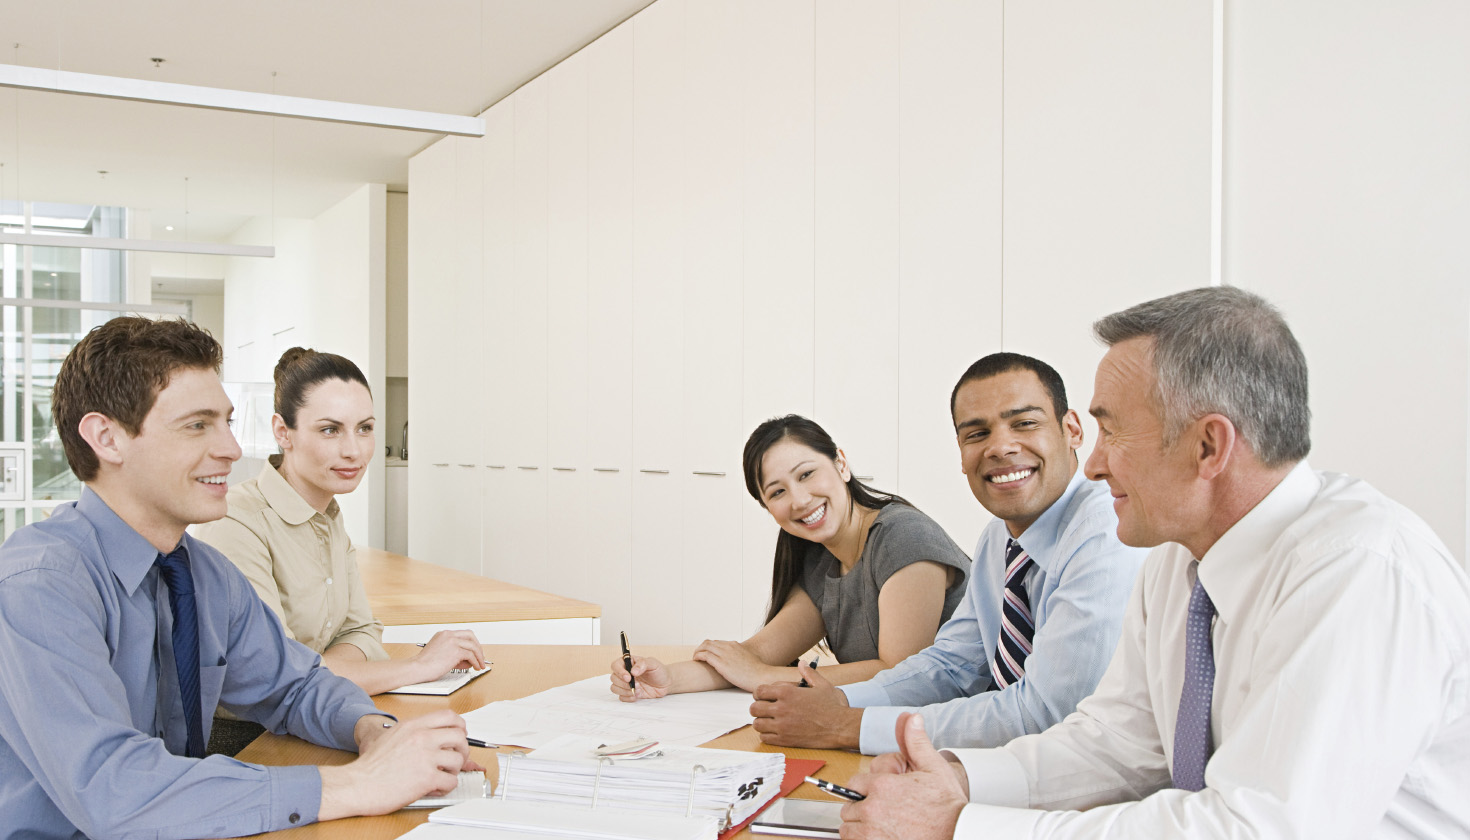 Five businesspeople in a meeting